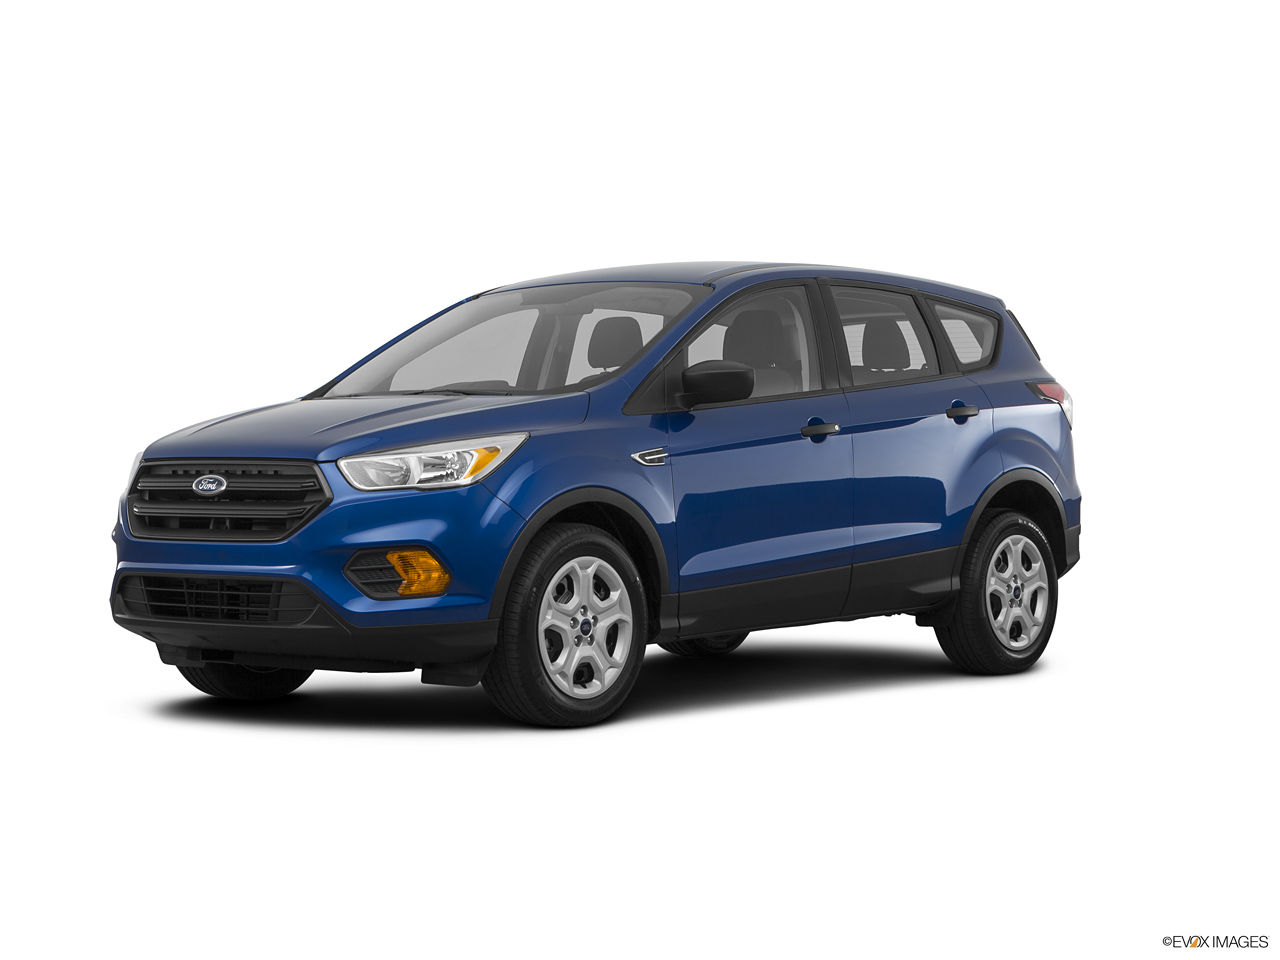 Image Result For Ford Ecosport Qatar